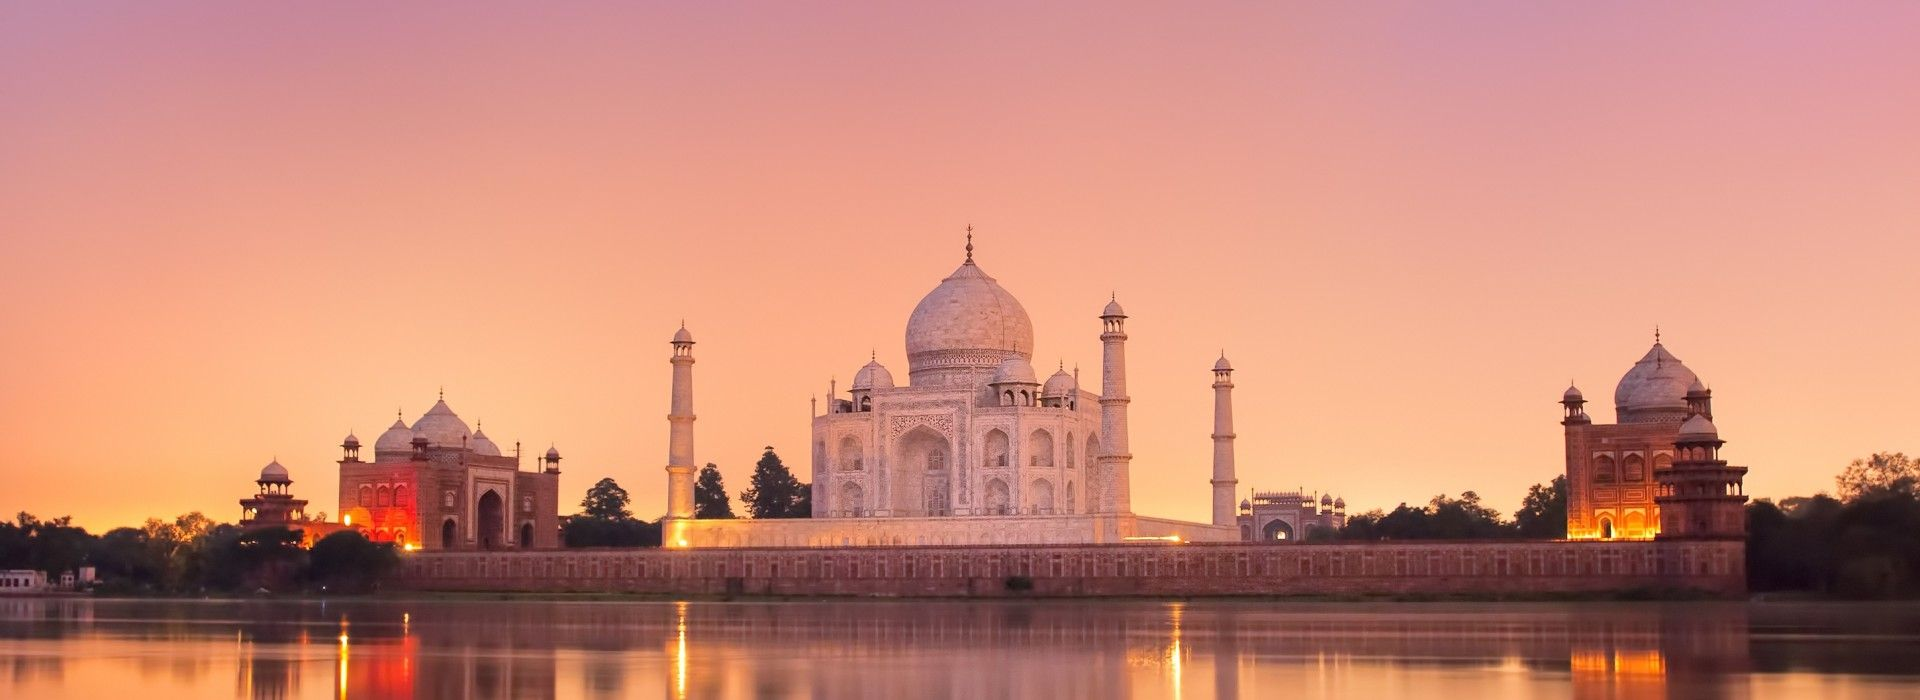 Sightseeing, attractions, culture and history Tours in New Delhi